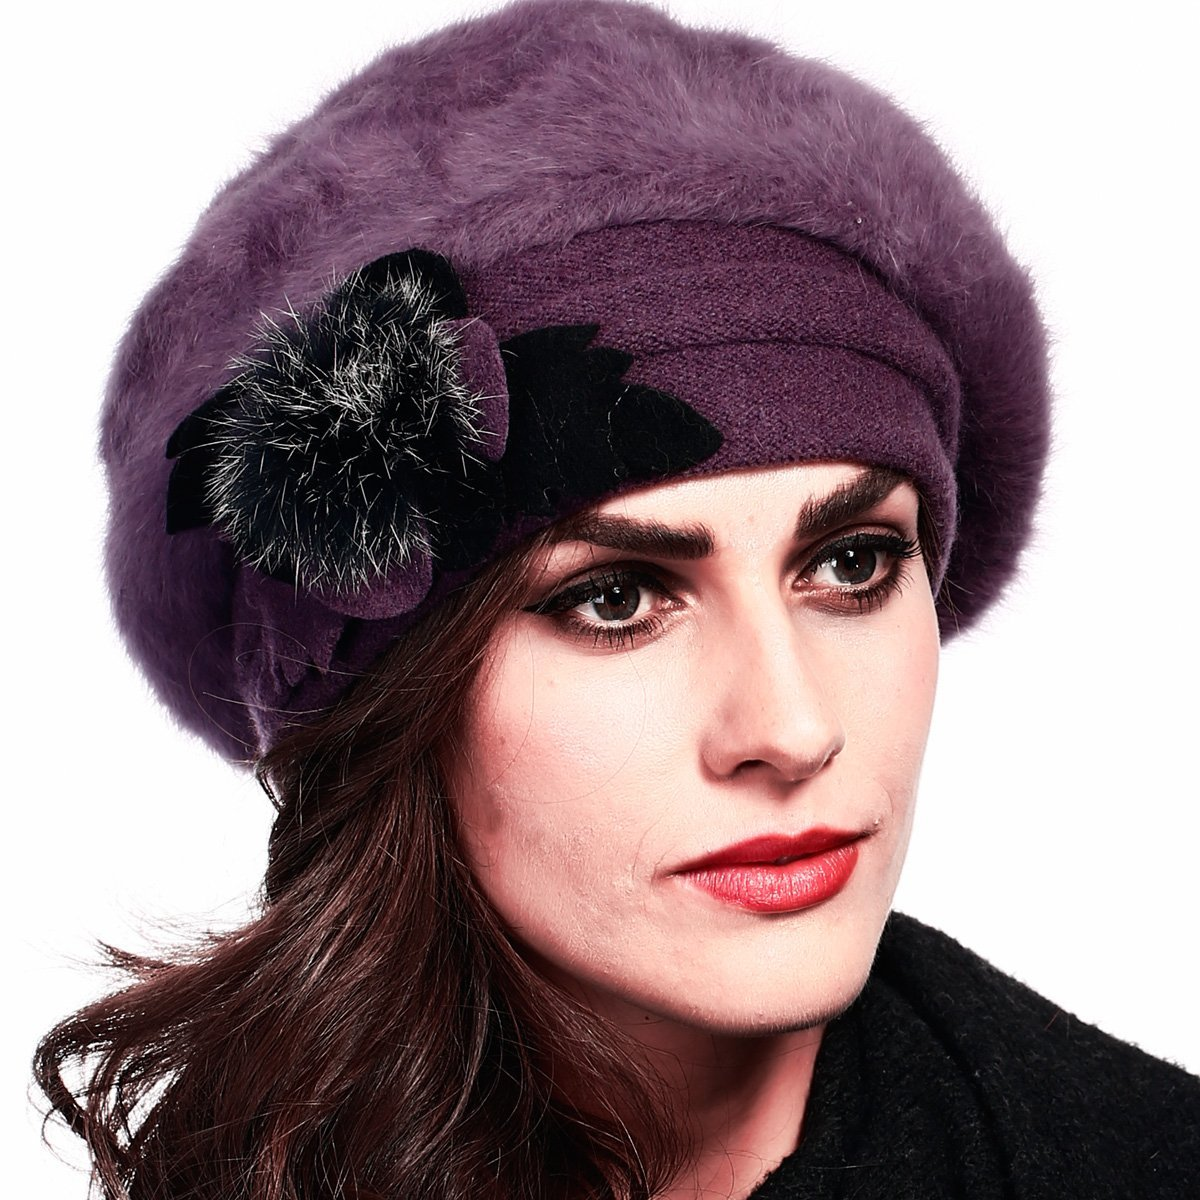 Retro Women Floral Trimmed Wool Blend Cloche Winter Hat (Angola-Purple)